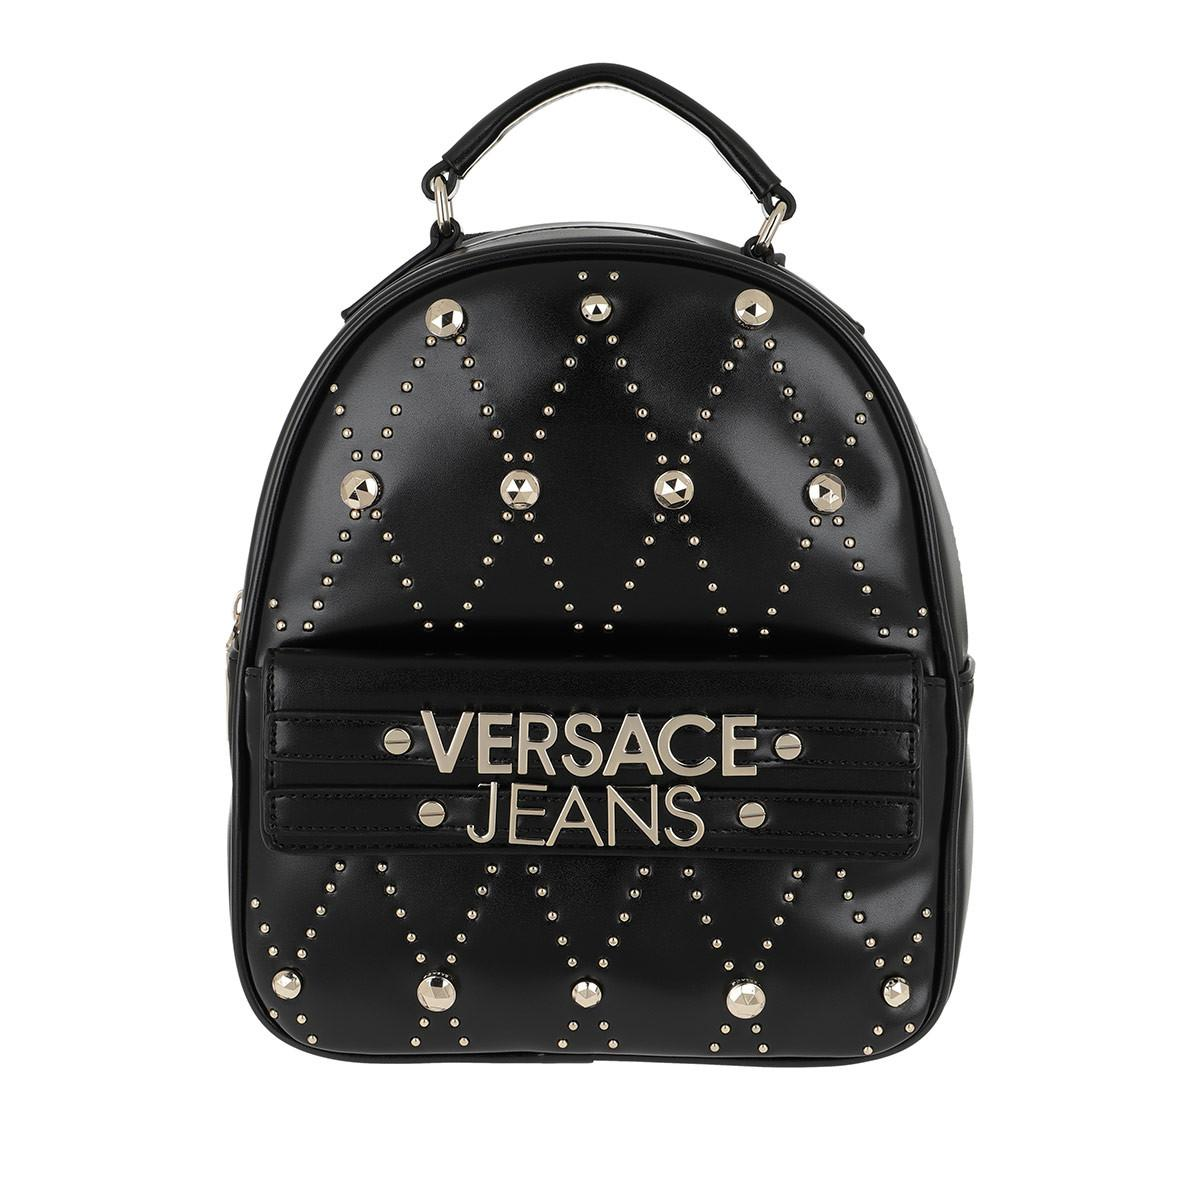 Versace Jeans Studded Logo Backpack Black in Black - Lyst 948c70ff73